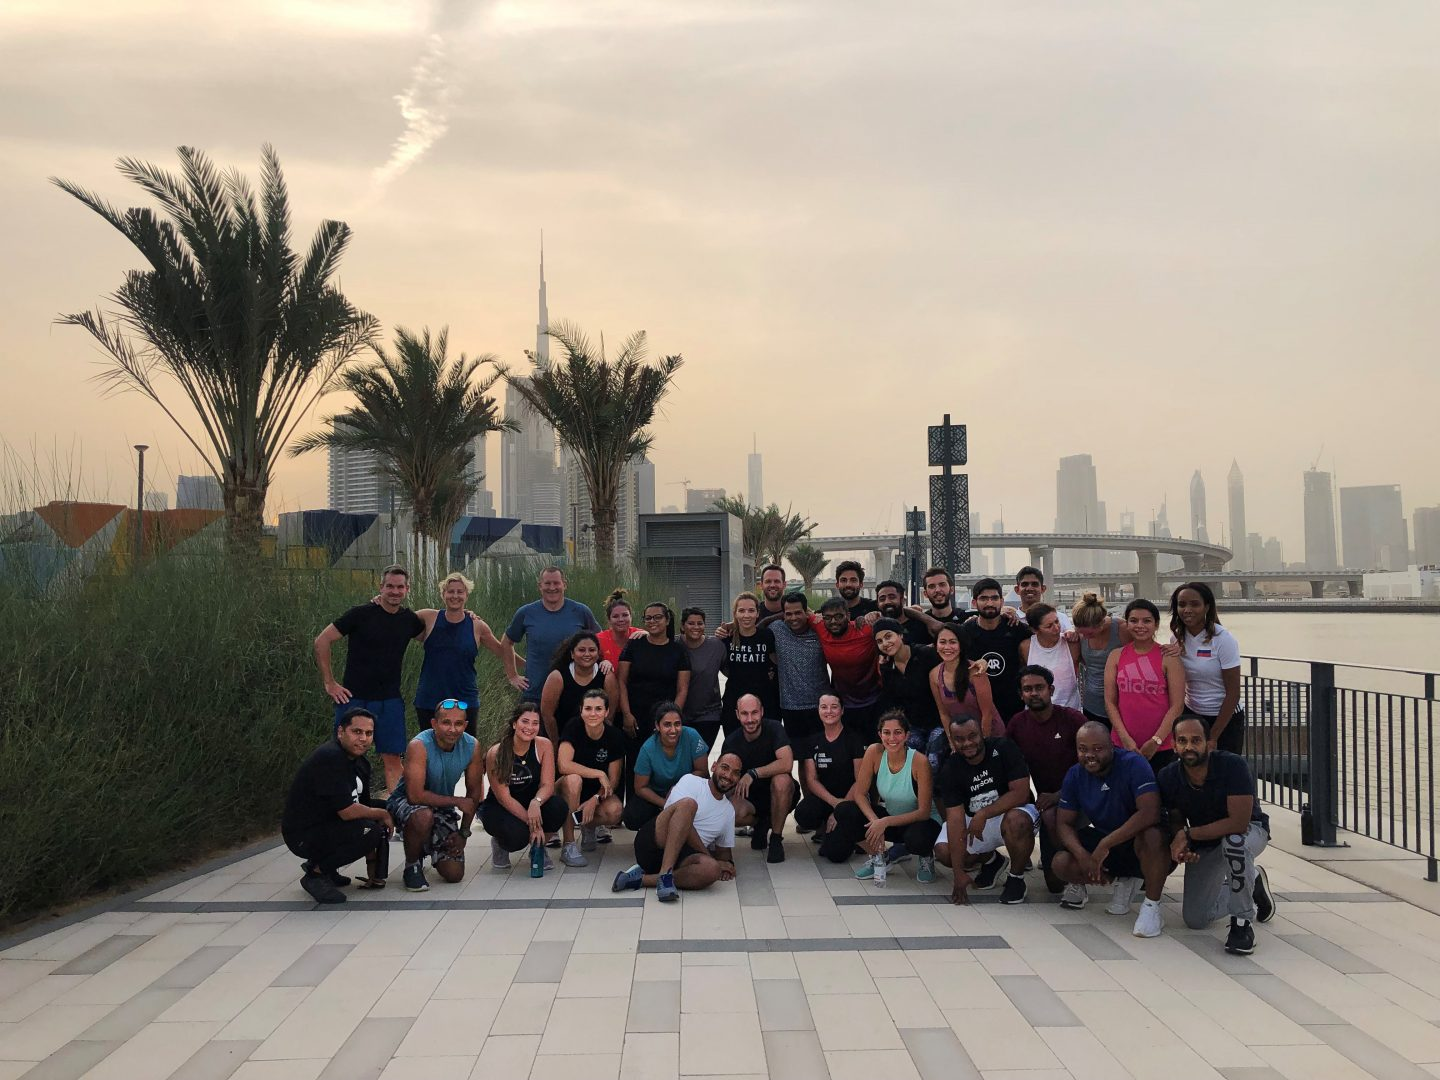 A group of runners standing together for a group picture in front of a city skyline. winning culture, motivation, success, personal growth